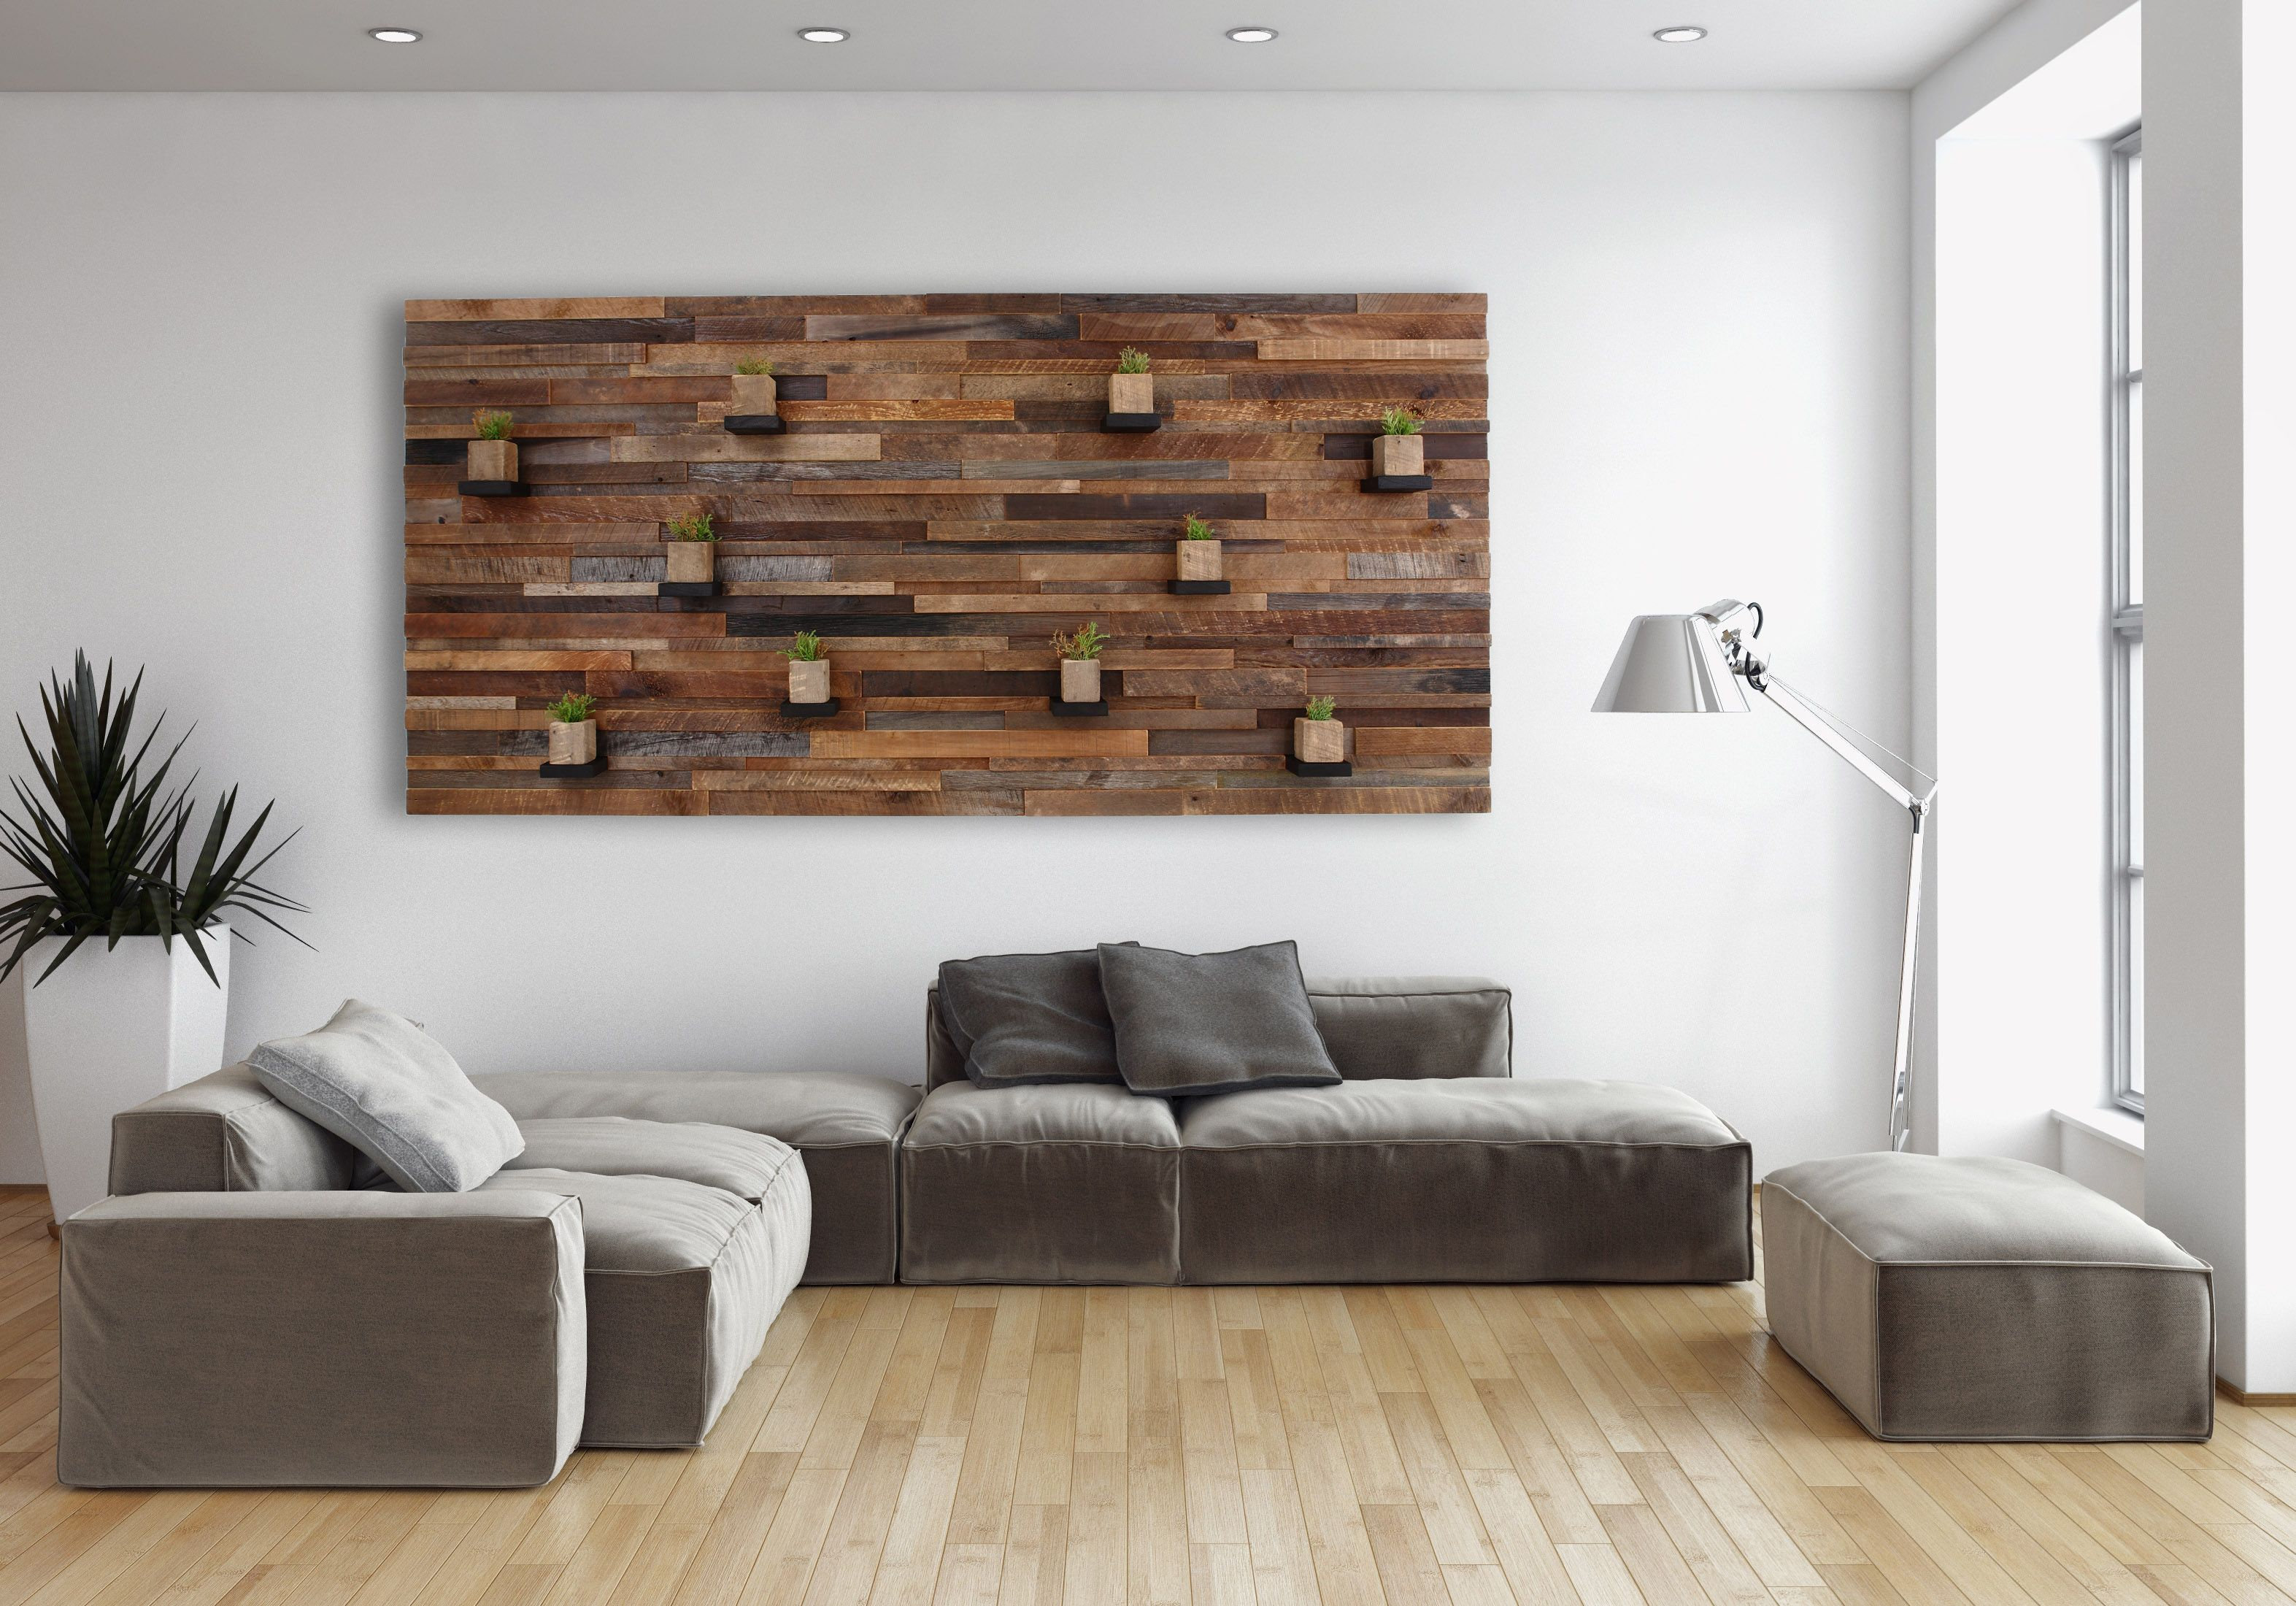 Selfmade Wohnideen Hand Made Wood Wall Art With Floating Wood Shelves 84 By